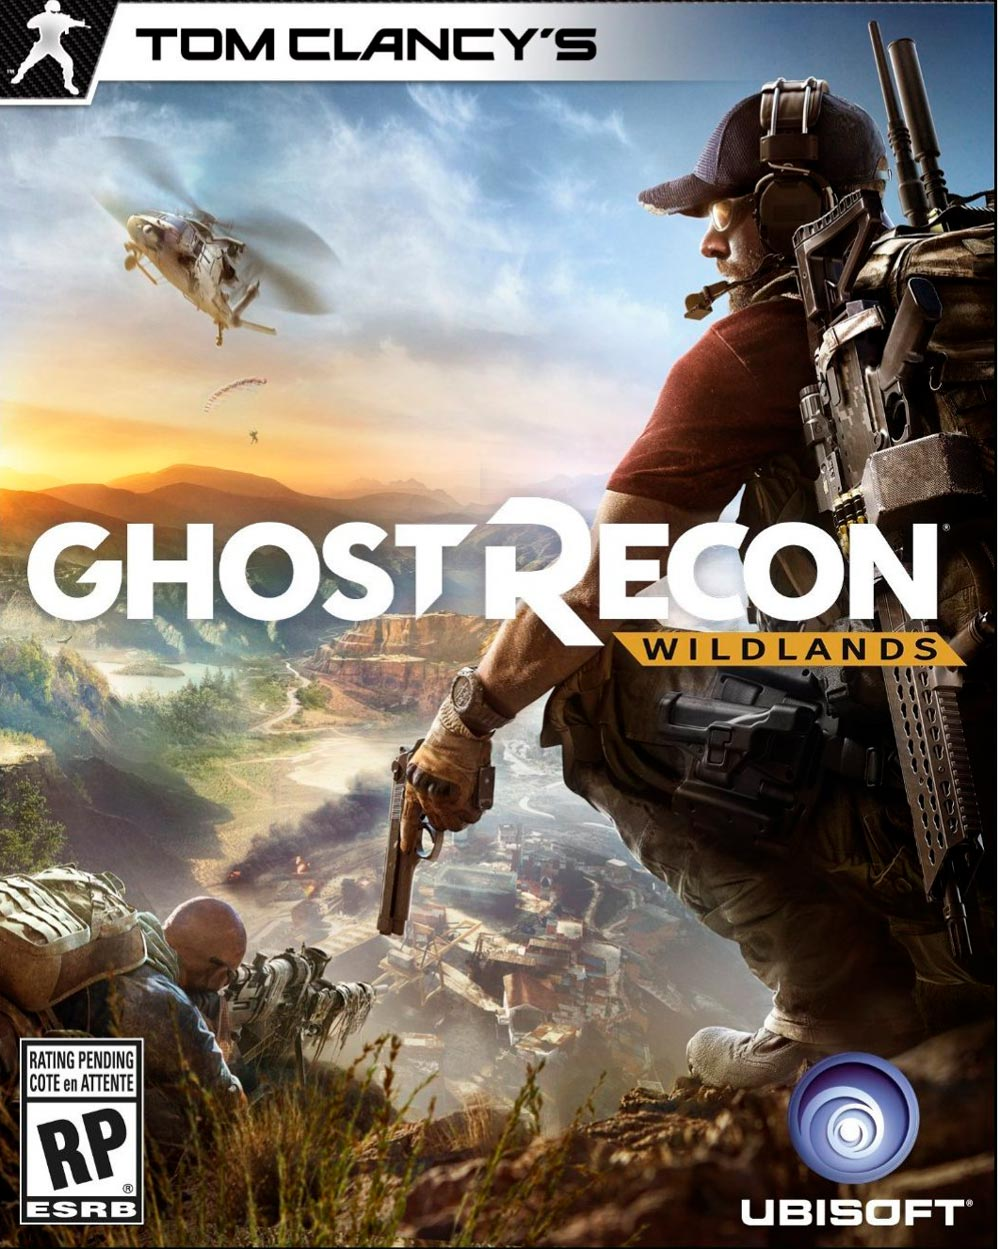 Ghost Recon Wildlands (Uplay KEY/RU LANGUAGE ONLY)